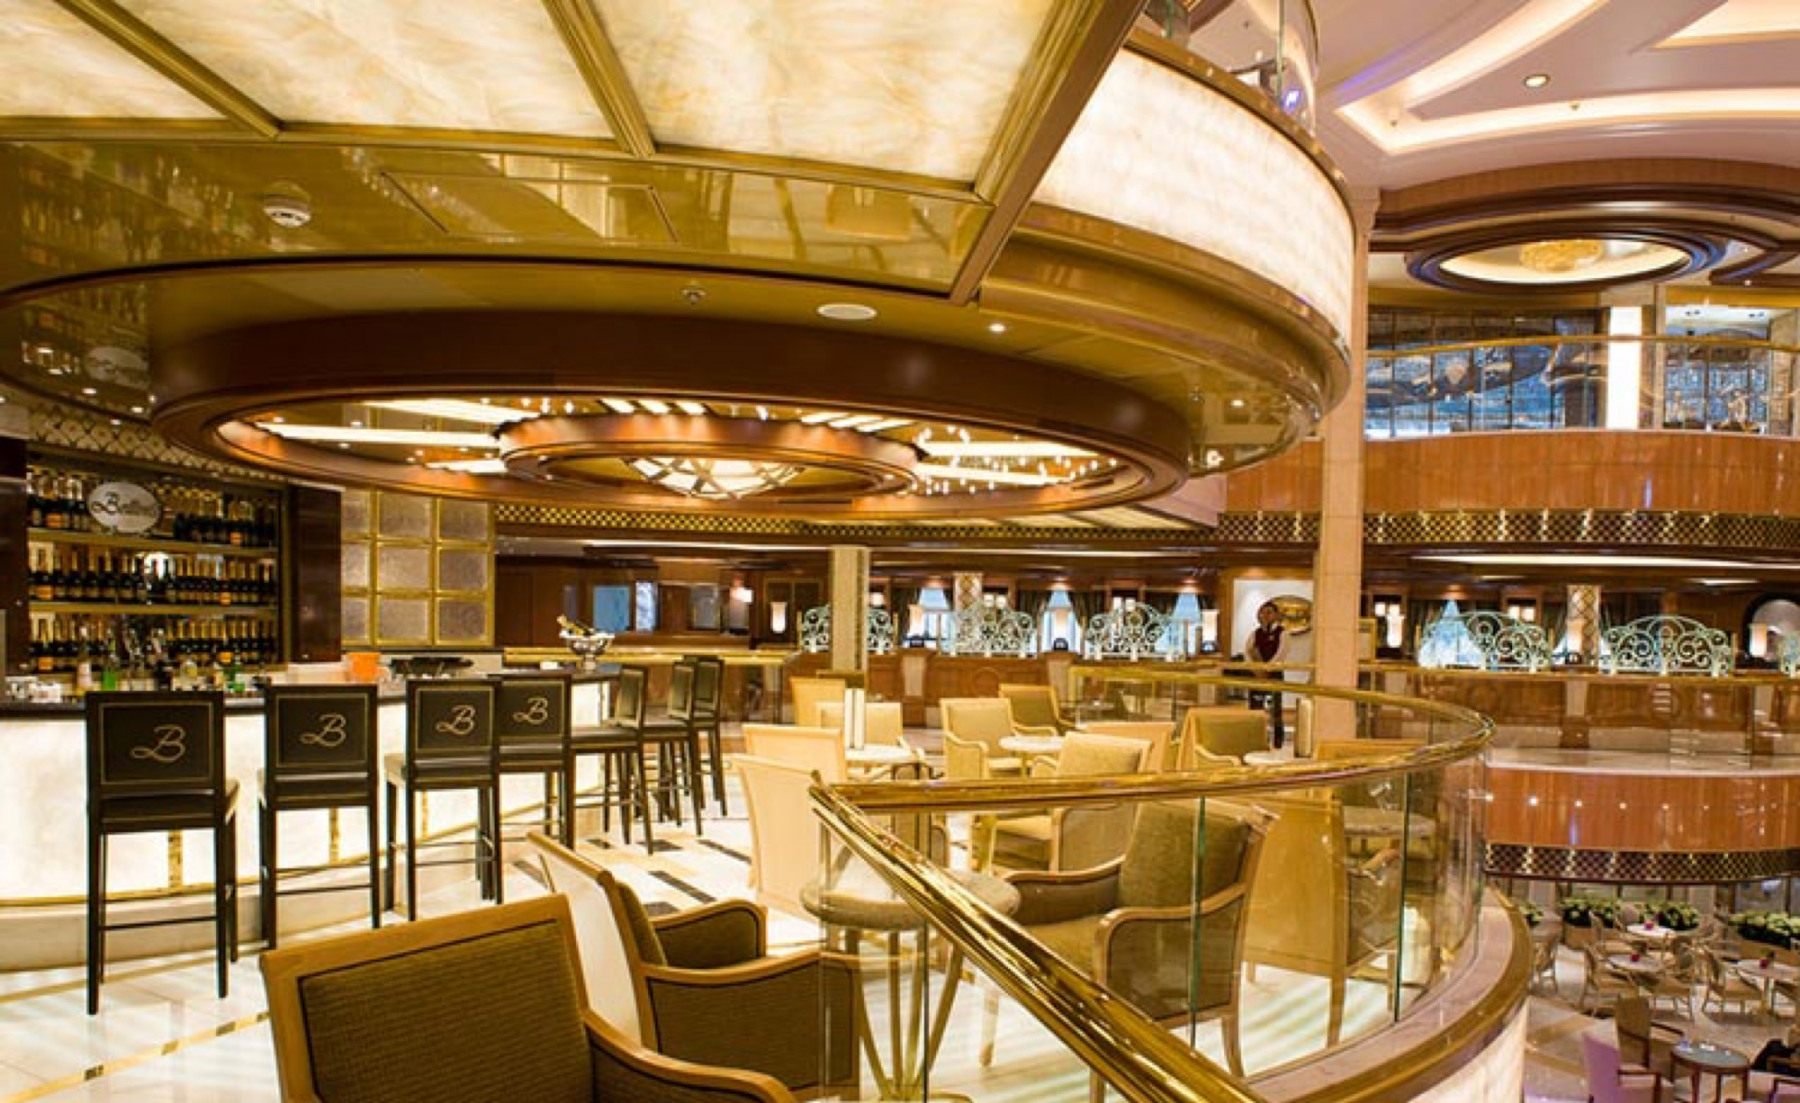 Princess Cruises Royal Class Interior bellinis.jpg